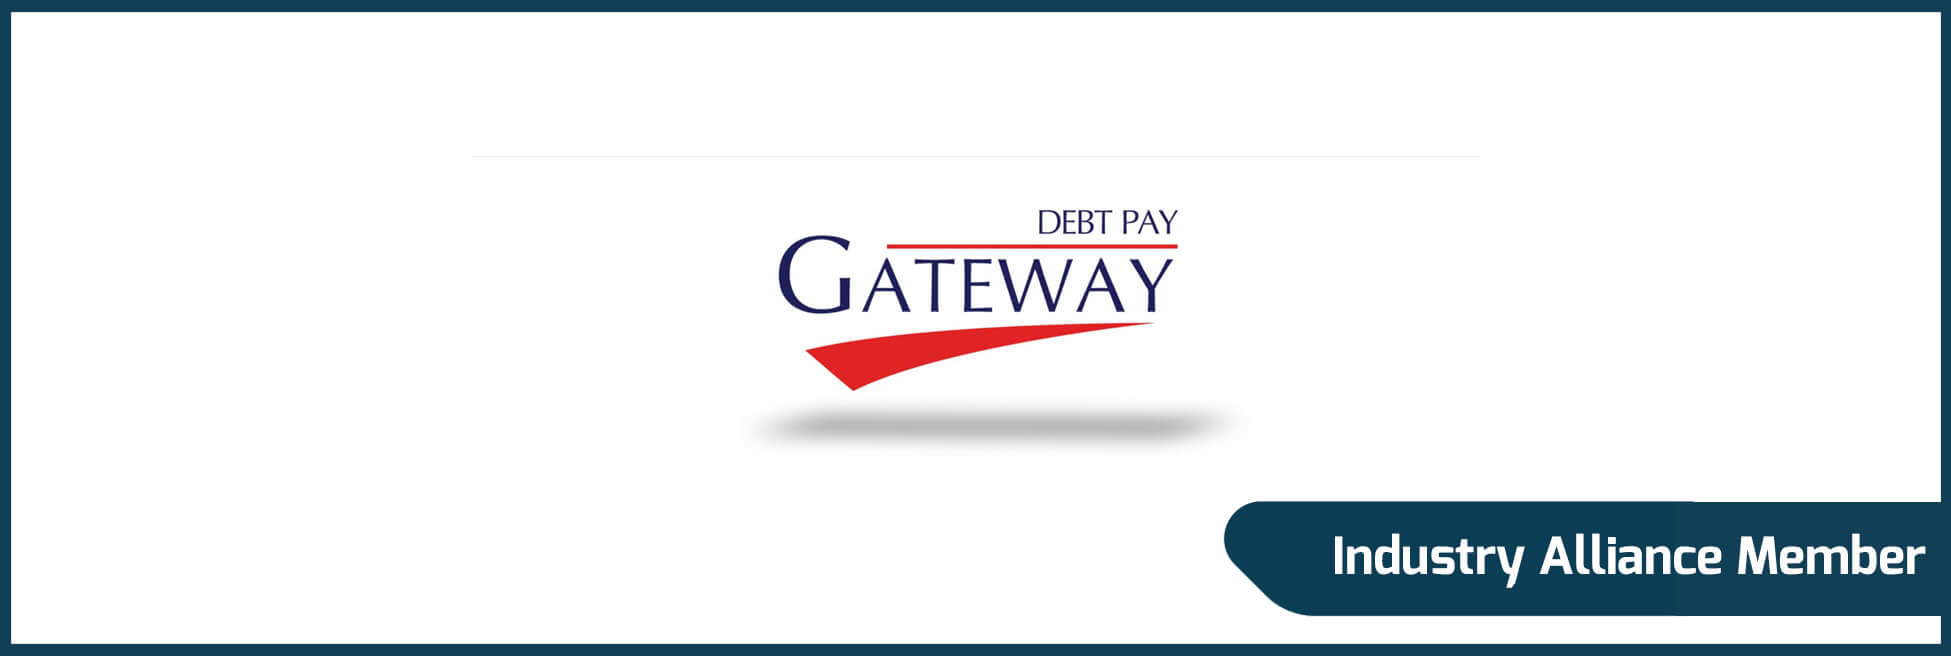 Debt Pay Gateway